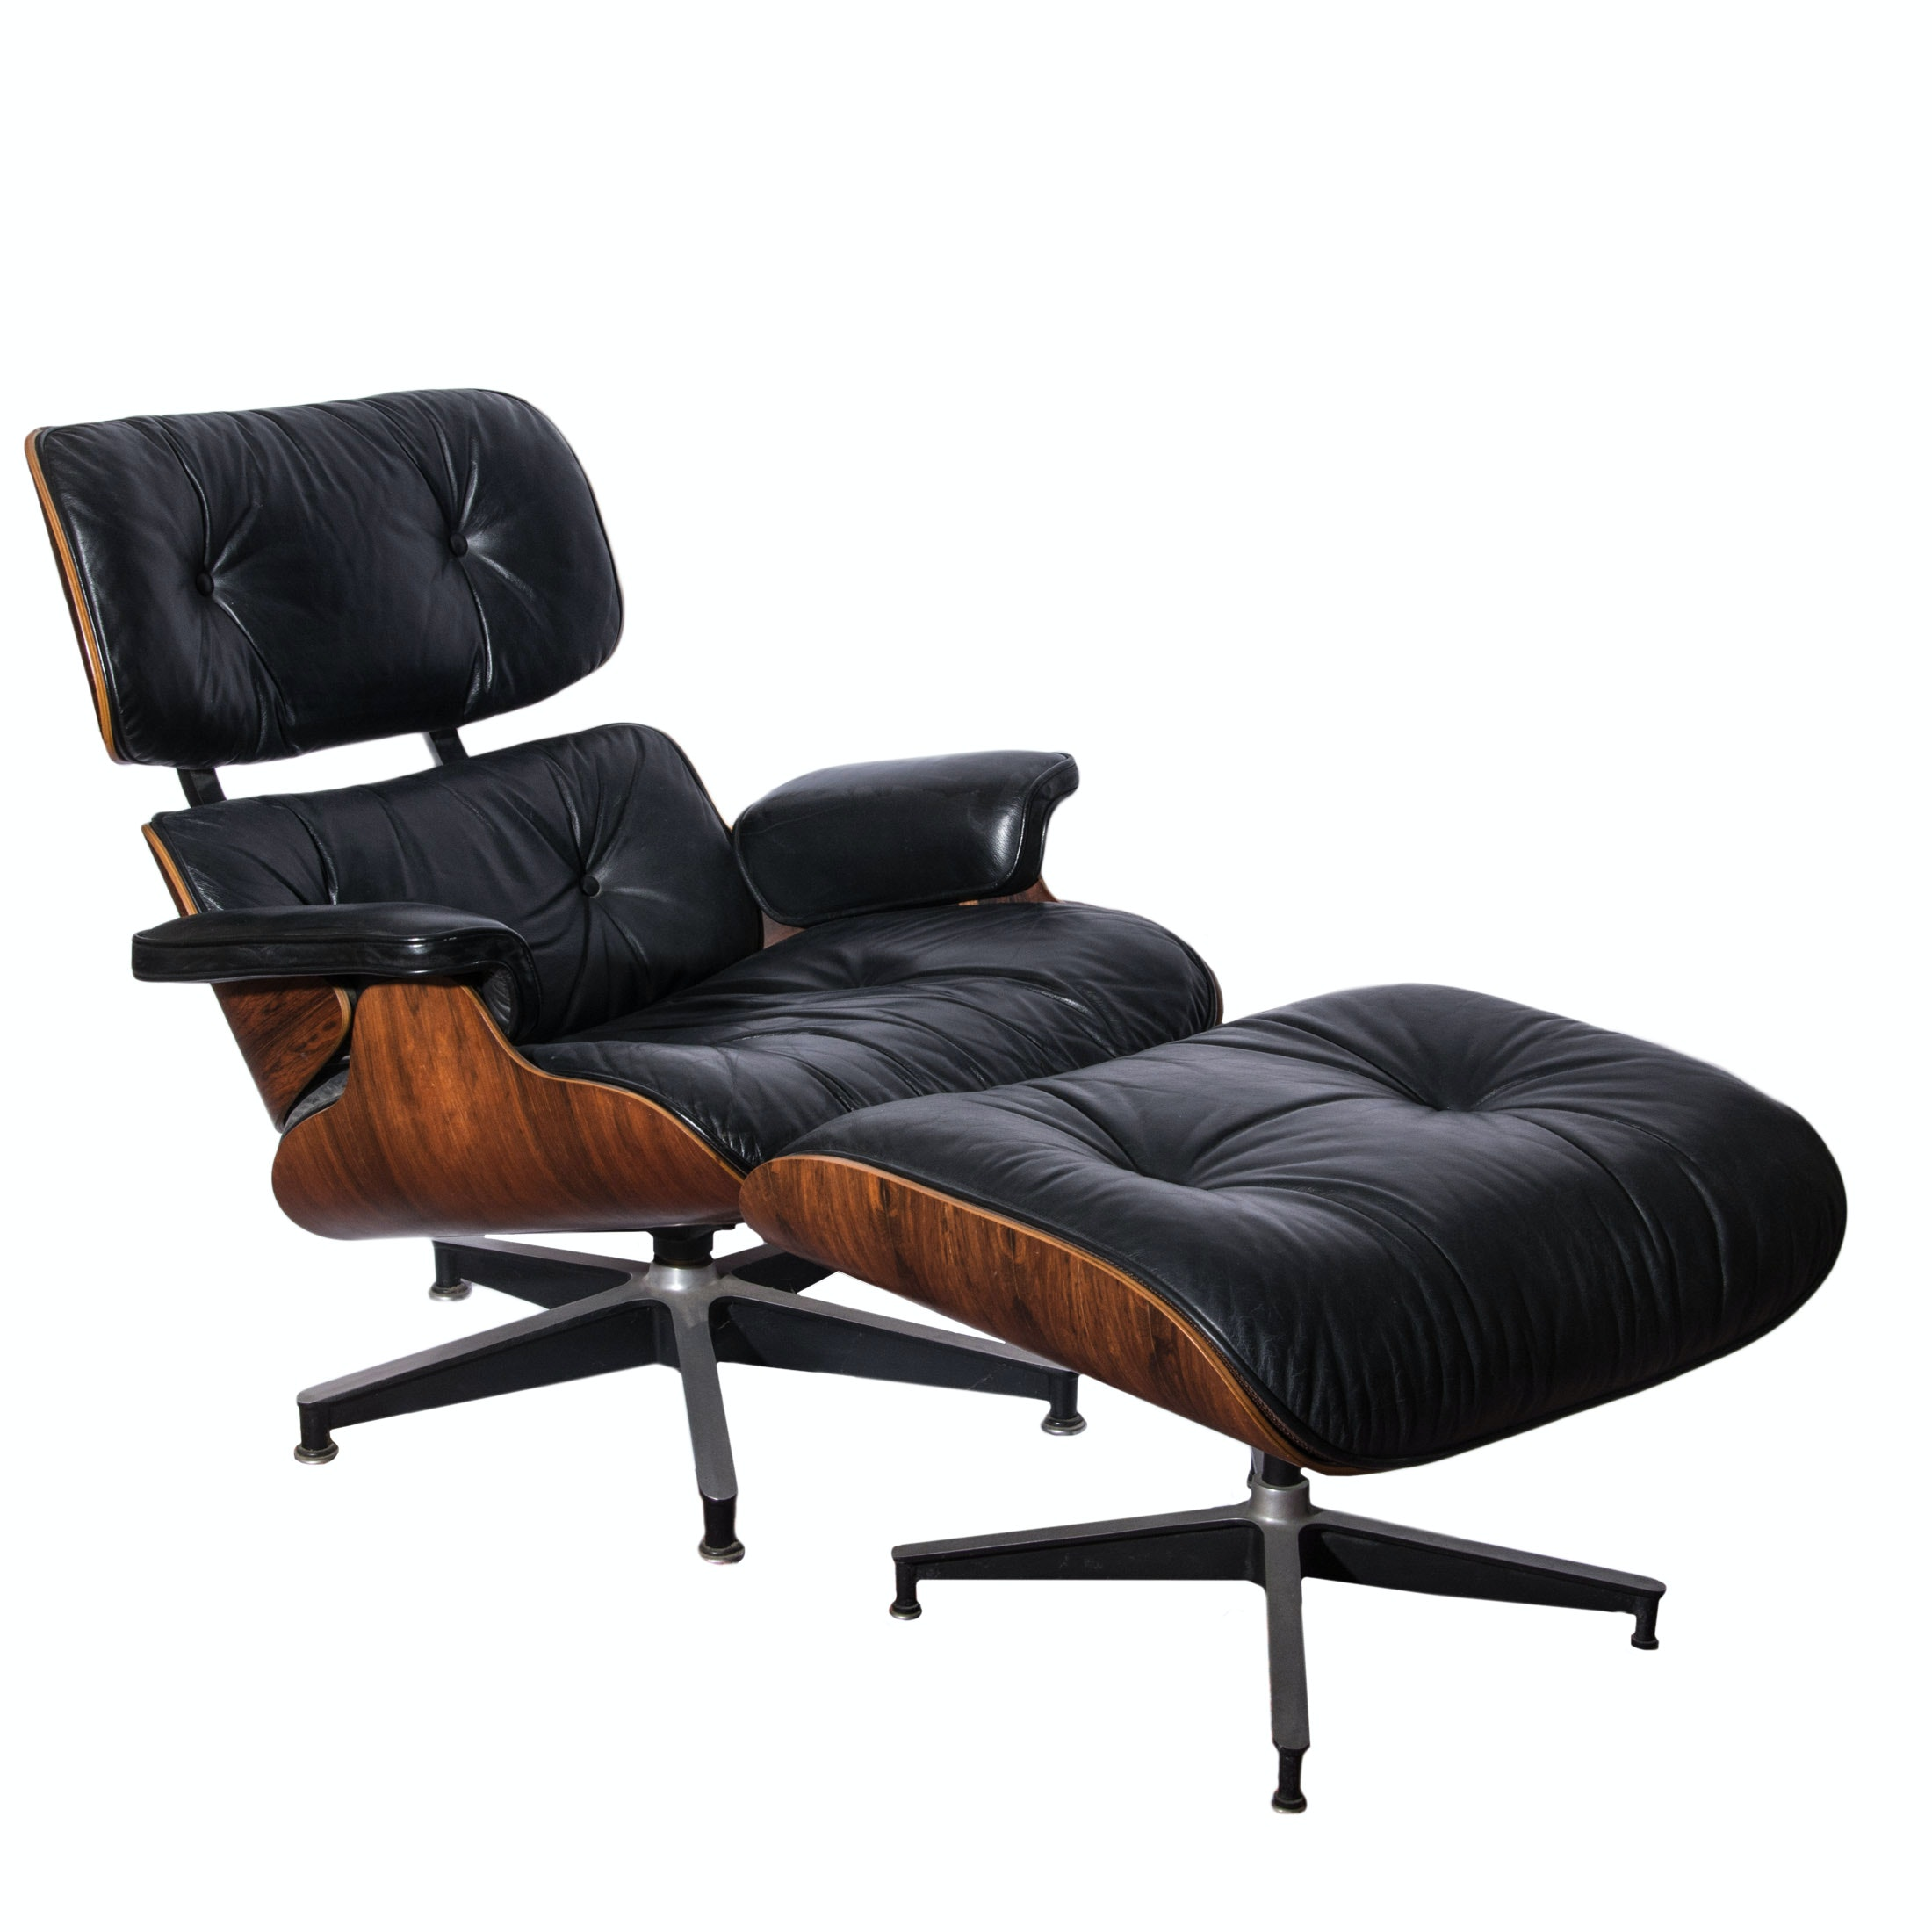 Eames for Herman Miller Lounge and Ottoman